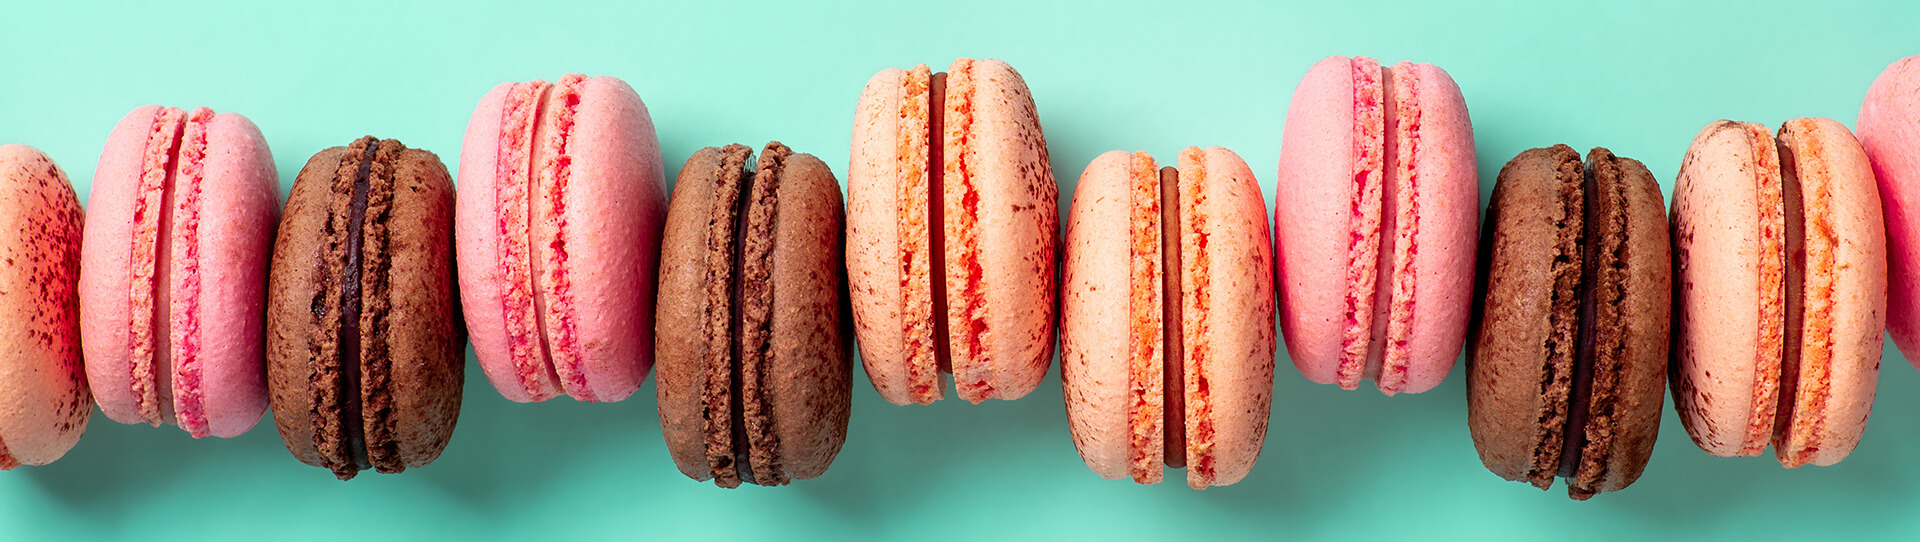 Various macarons on turquoise background